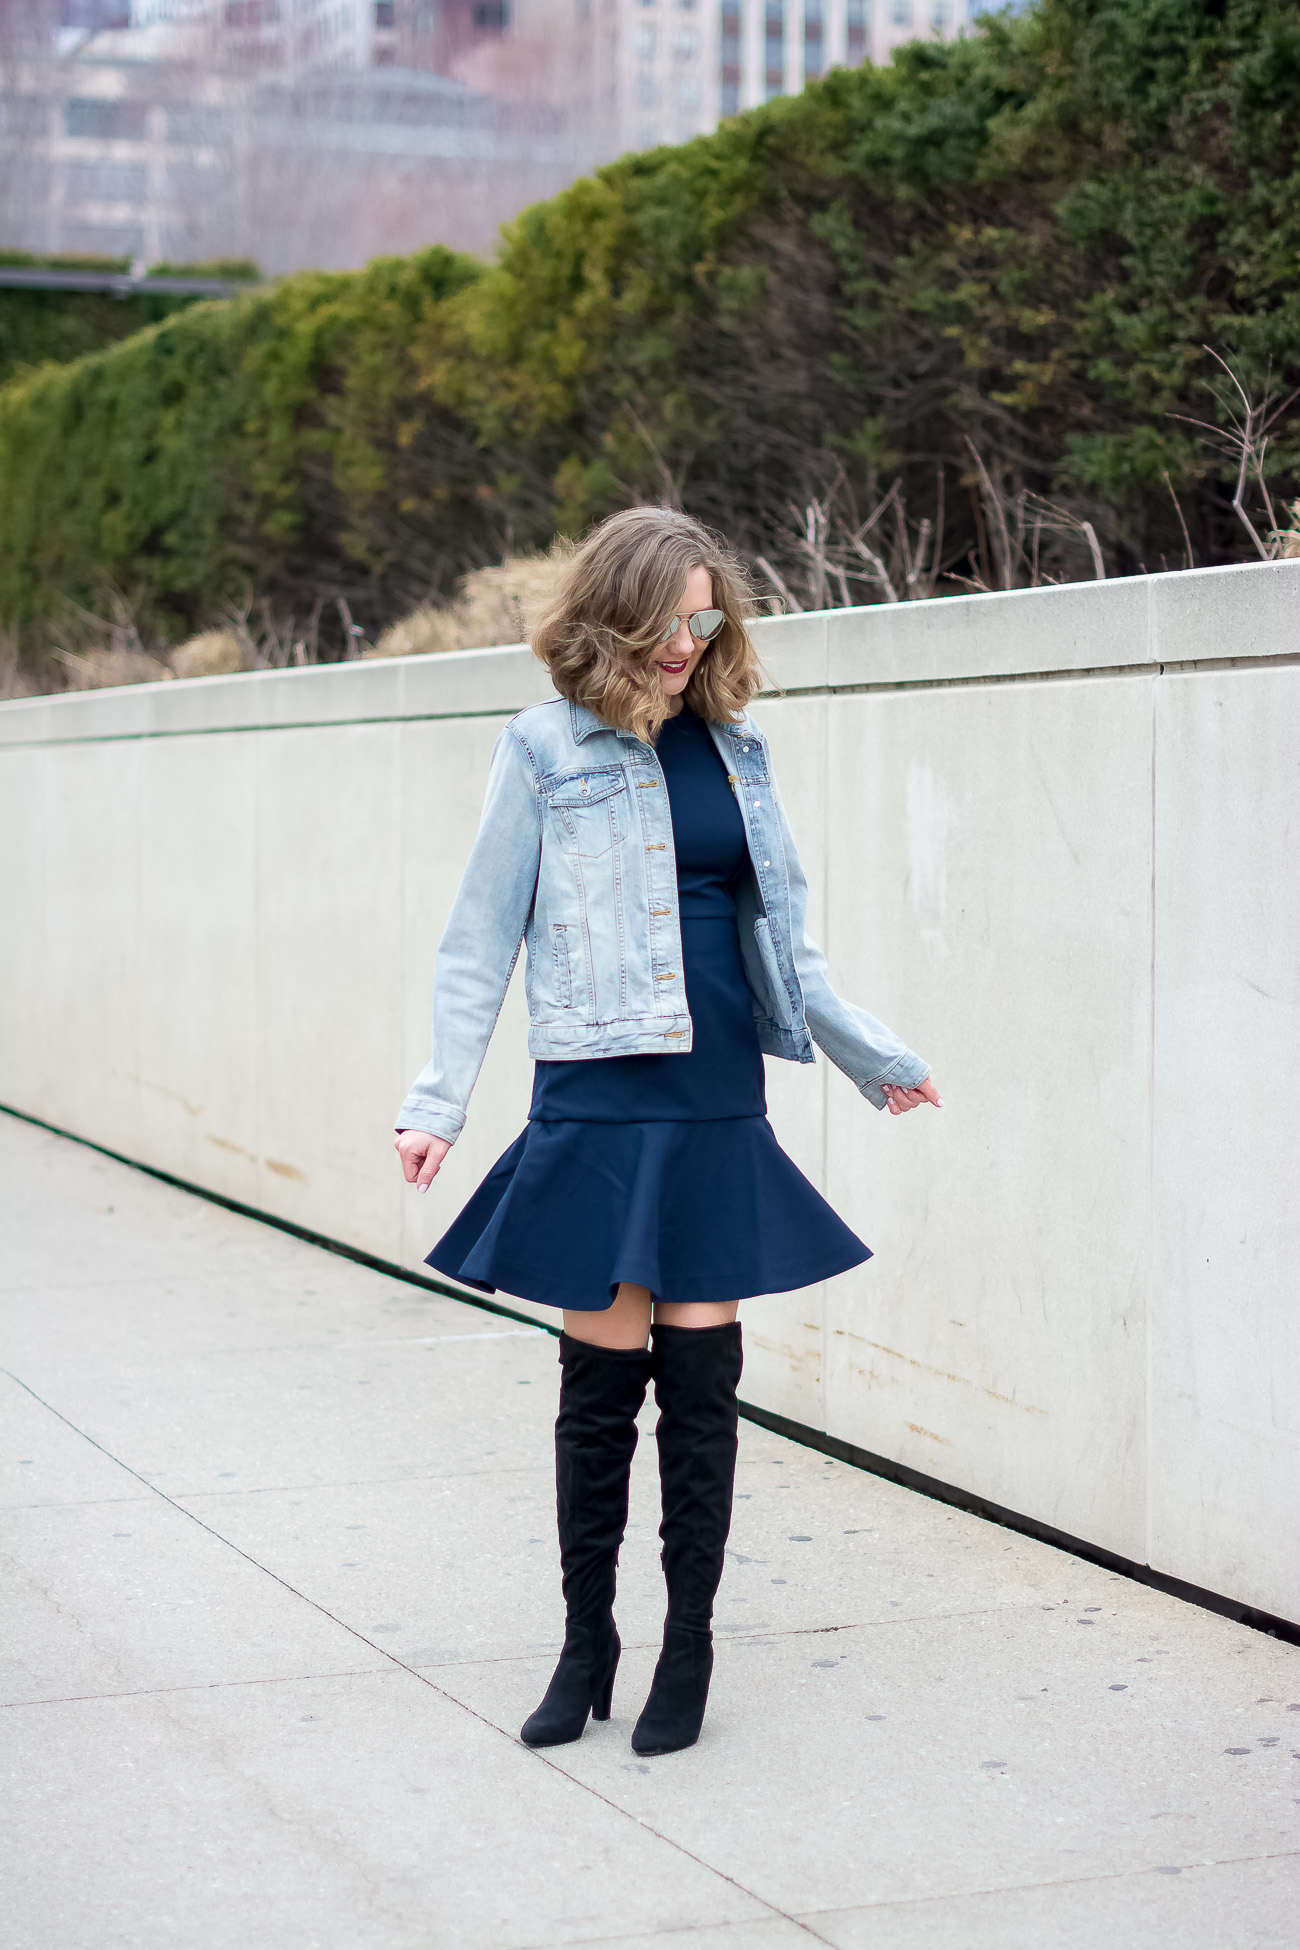 target-light-wash-denim-jacket-banana-republic-fit-and-flare-dress-steve-madden-over-the-knee-faux-suede-black-boots-vintage-rhinestone-brooches-mirrored-aviator-vintage-meets-modern-outfit